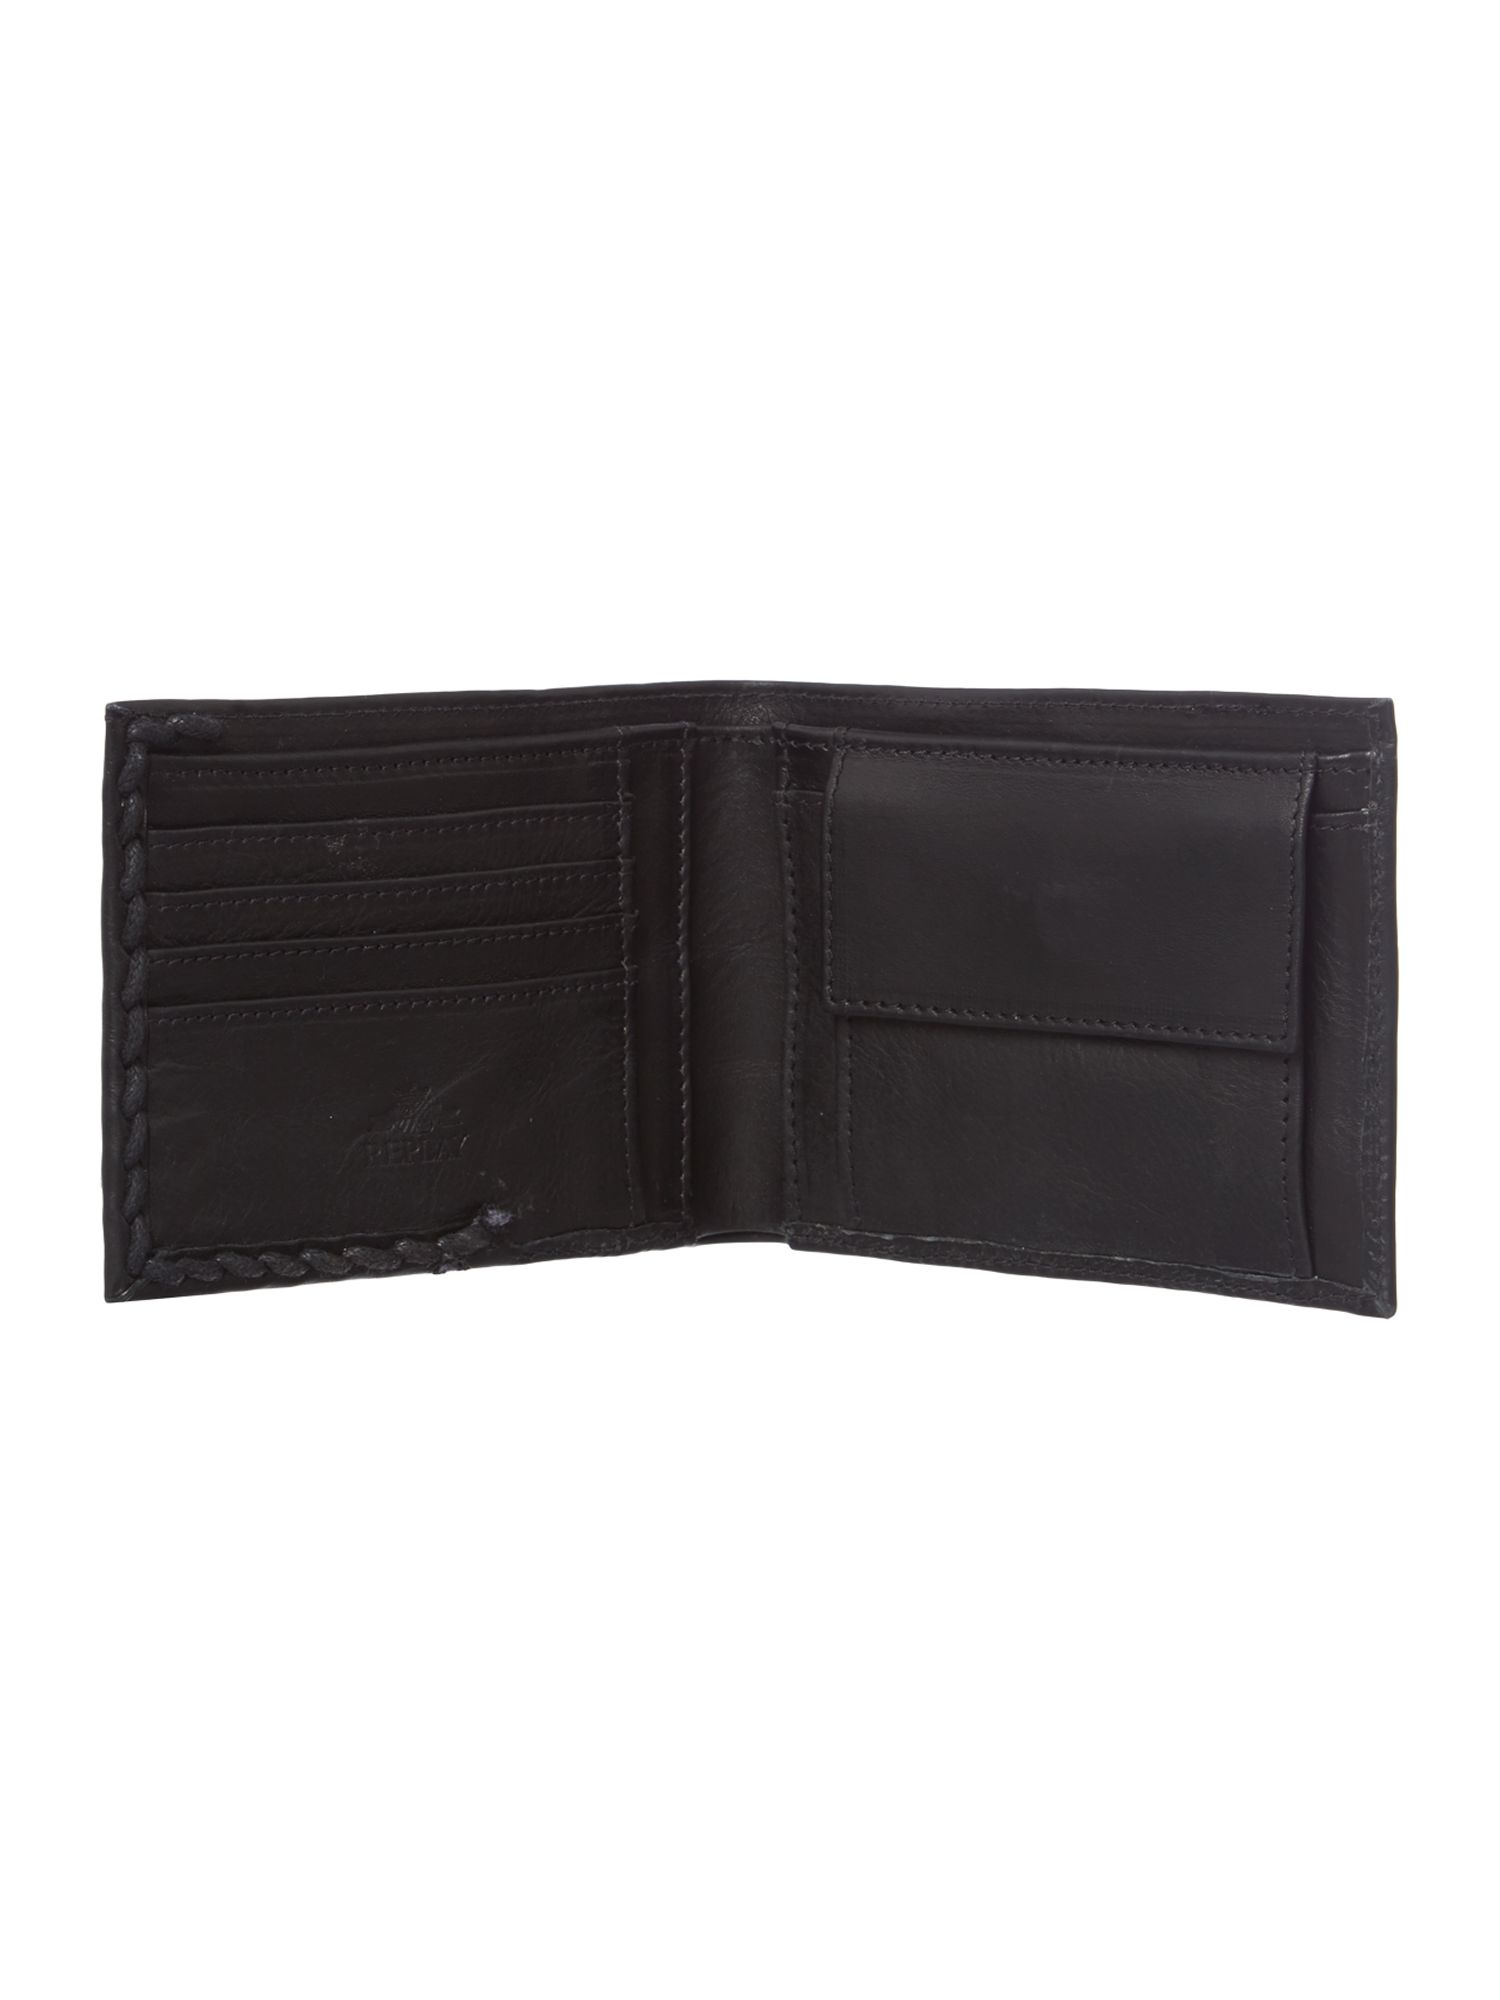 100% leather wallet